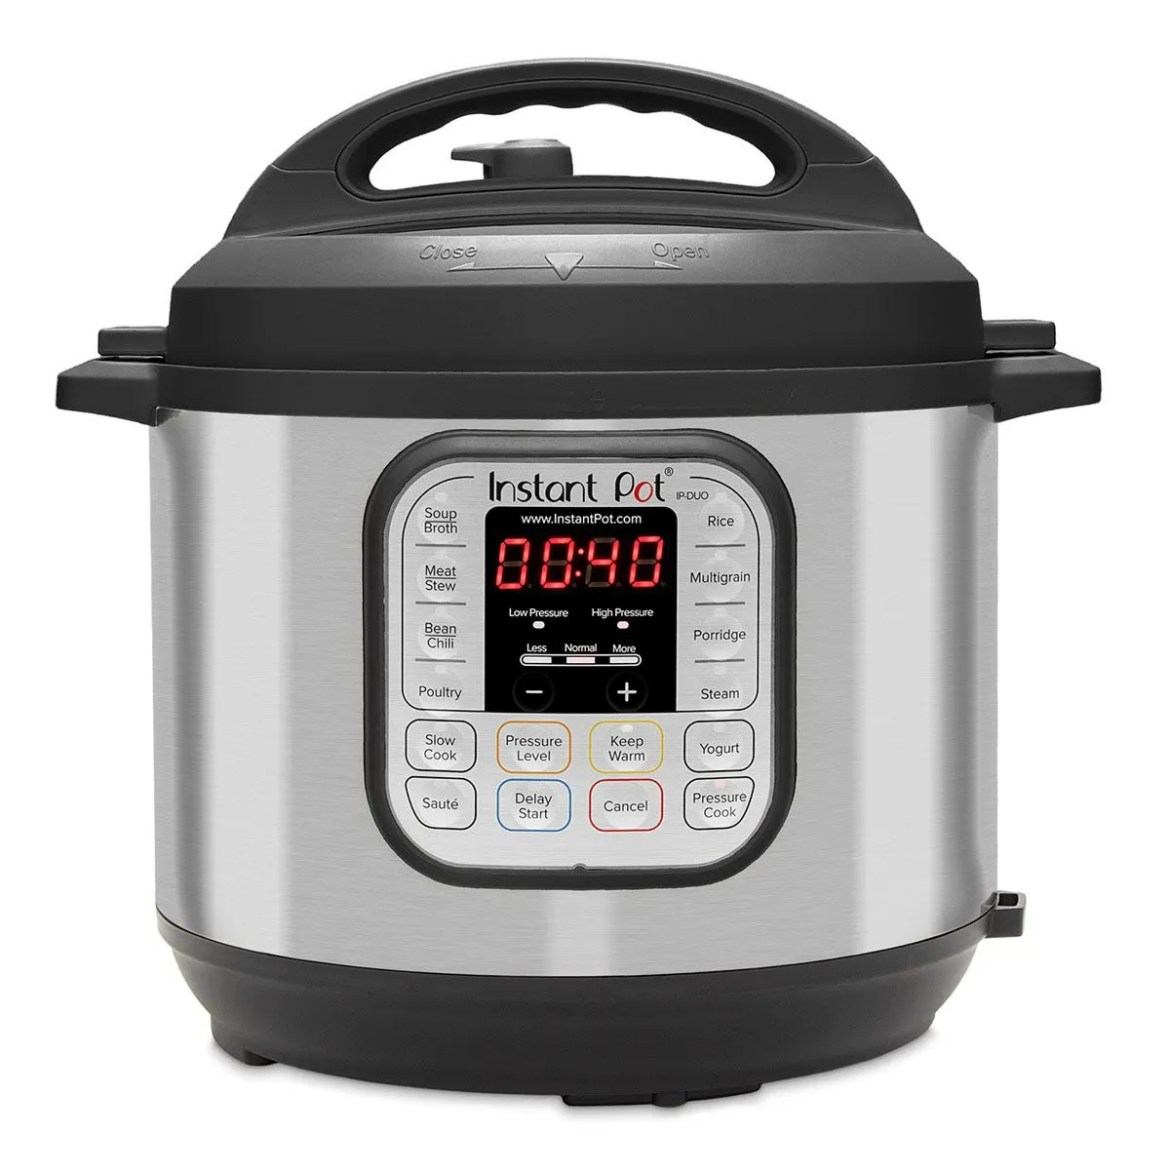 Instant Pot 60 Duo Plus 7-in-1 Multi-Use 5.7L Programmable Pressure Cooker - Stainless Steel